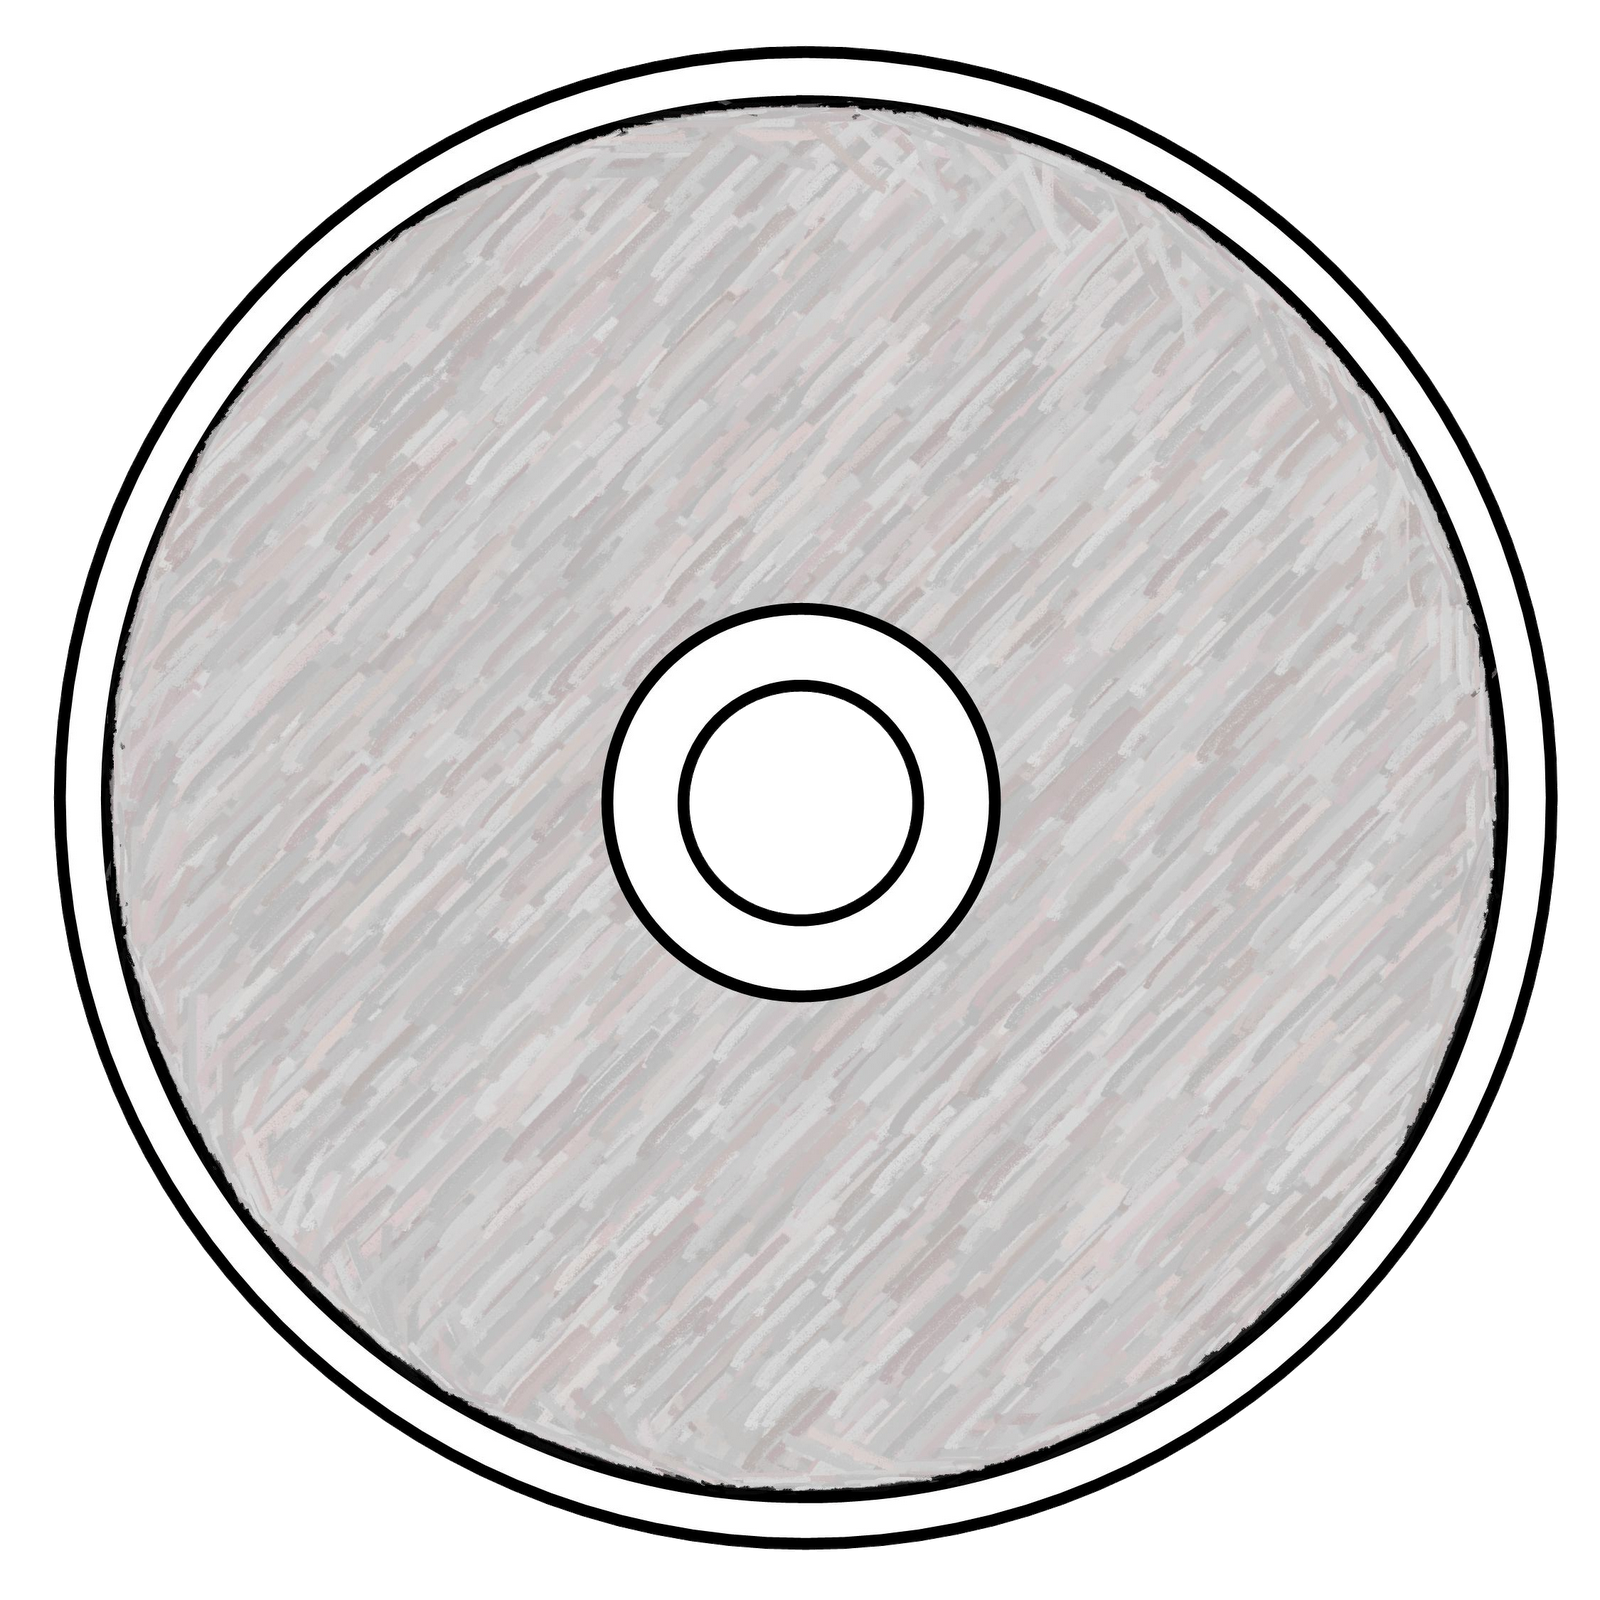 Cd clipart computer tool. By clip art carrie